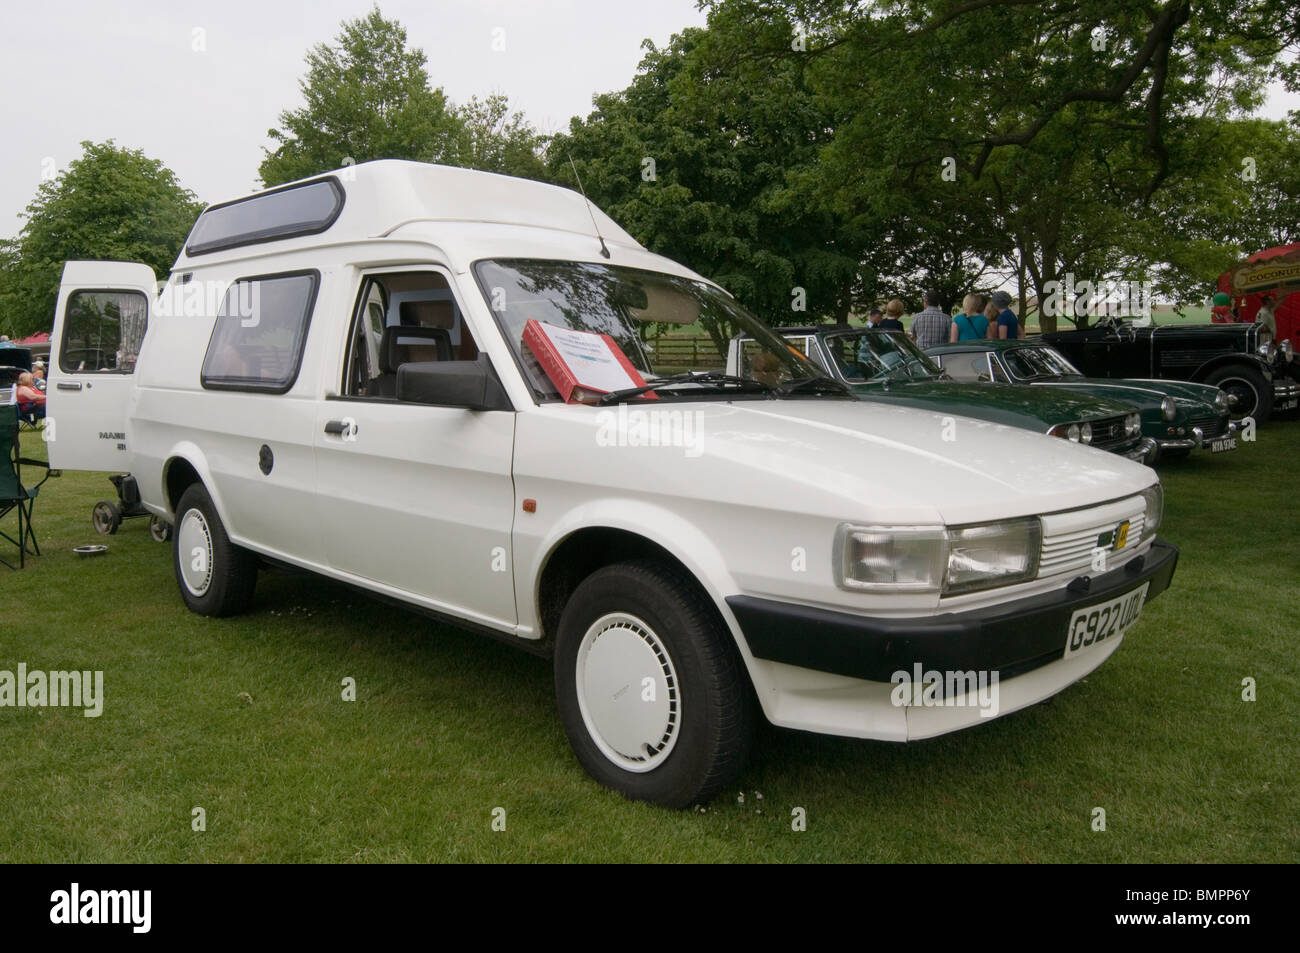 Old British Van Stock Photos \u0026 Old British Van Stock Images - Alamy